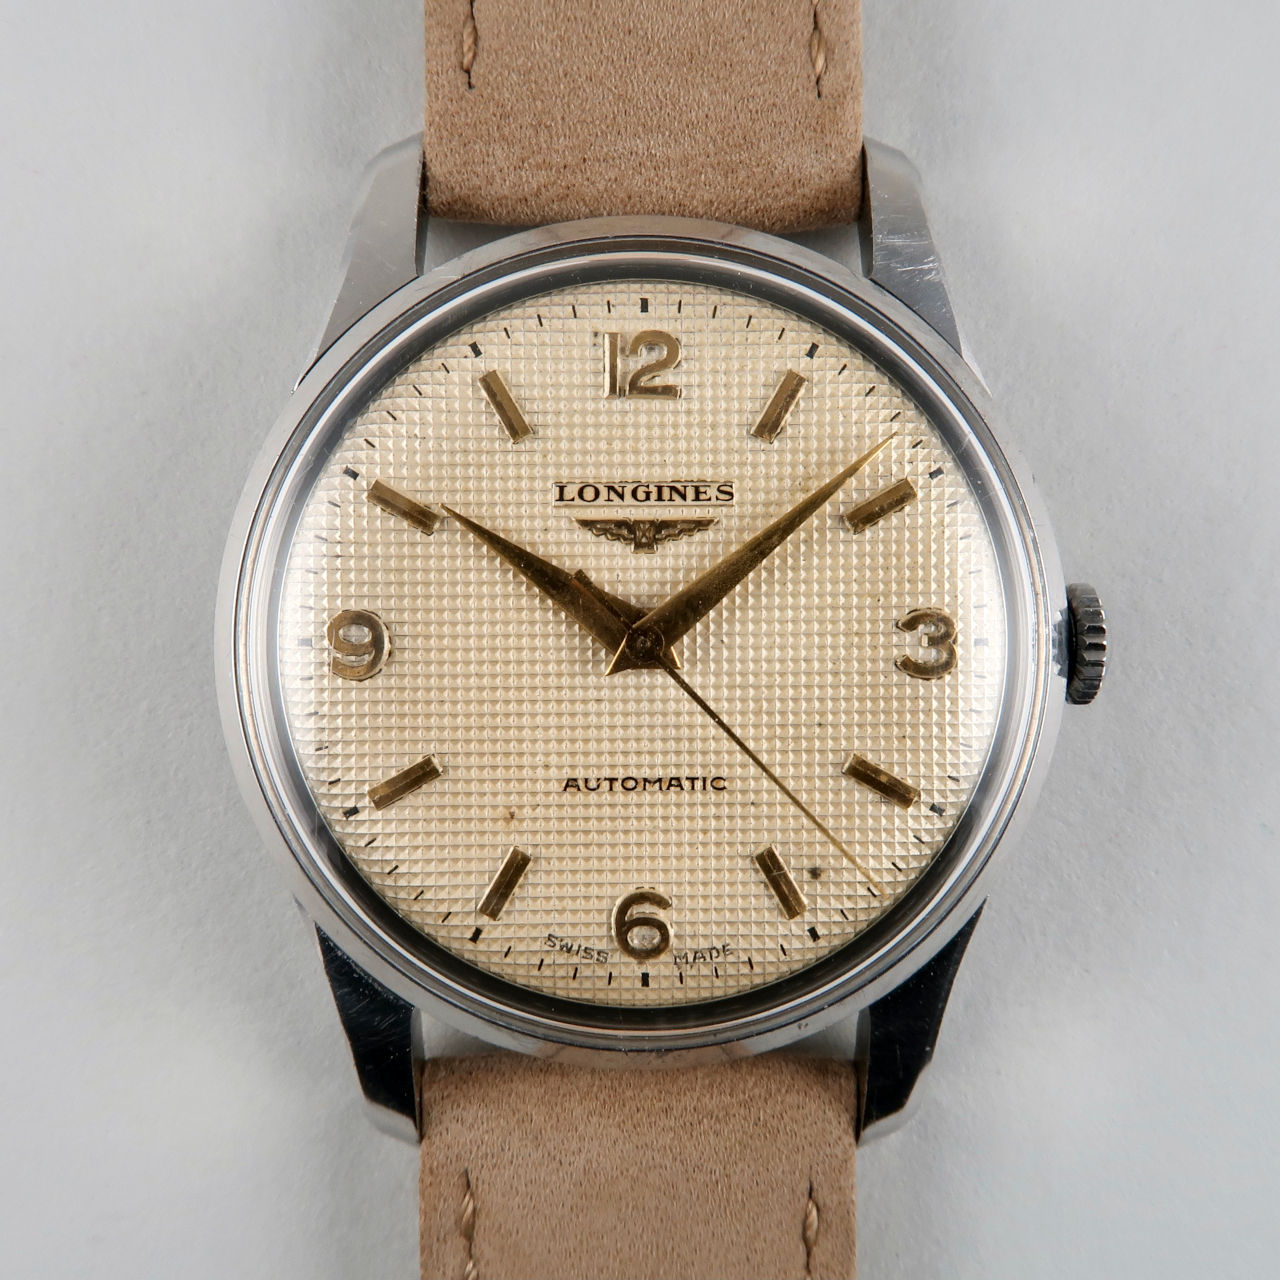 Longines Ref. 6379 invoiced 1955 honeycomb dial